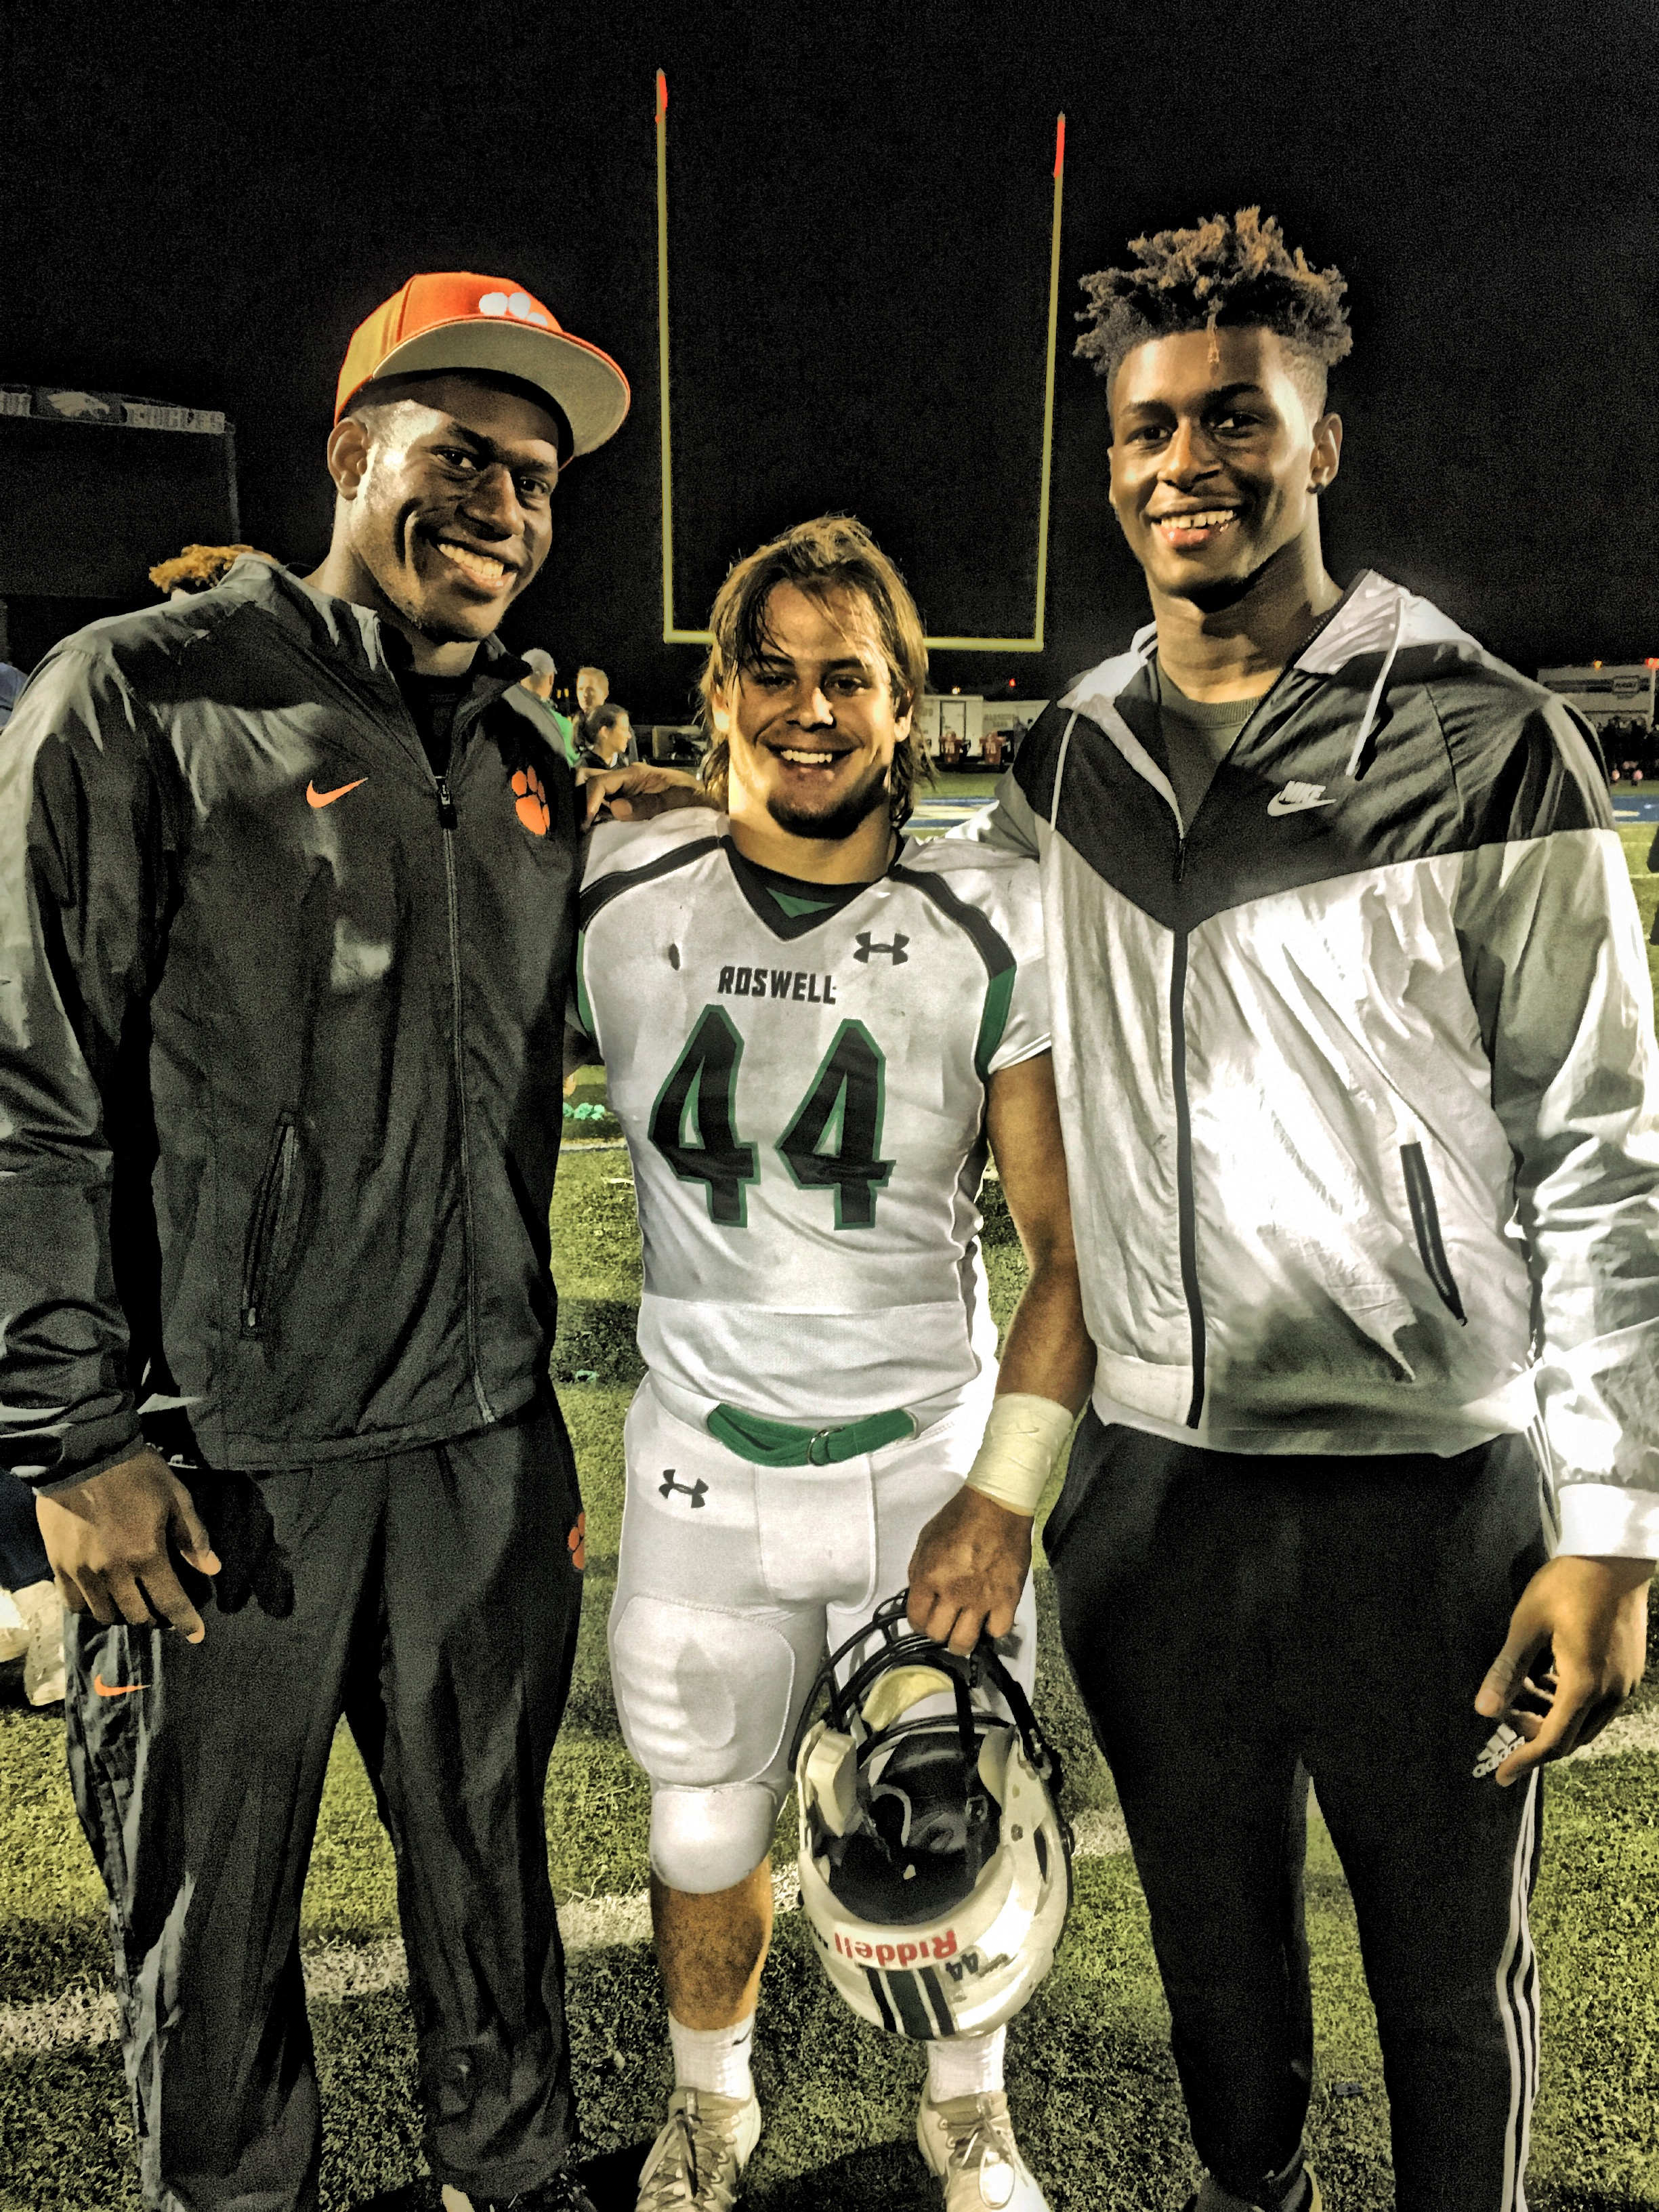 My son celebrating last week's win with Roswell alumni: Clemson's Tre Lamar and UNC's Tyrone Hopper.